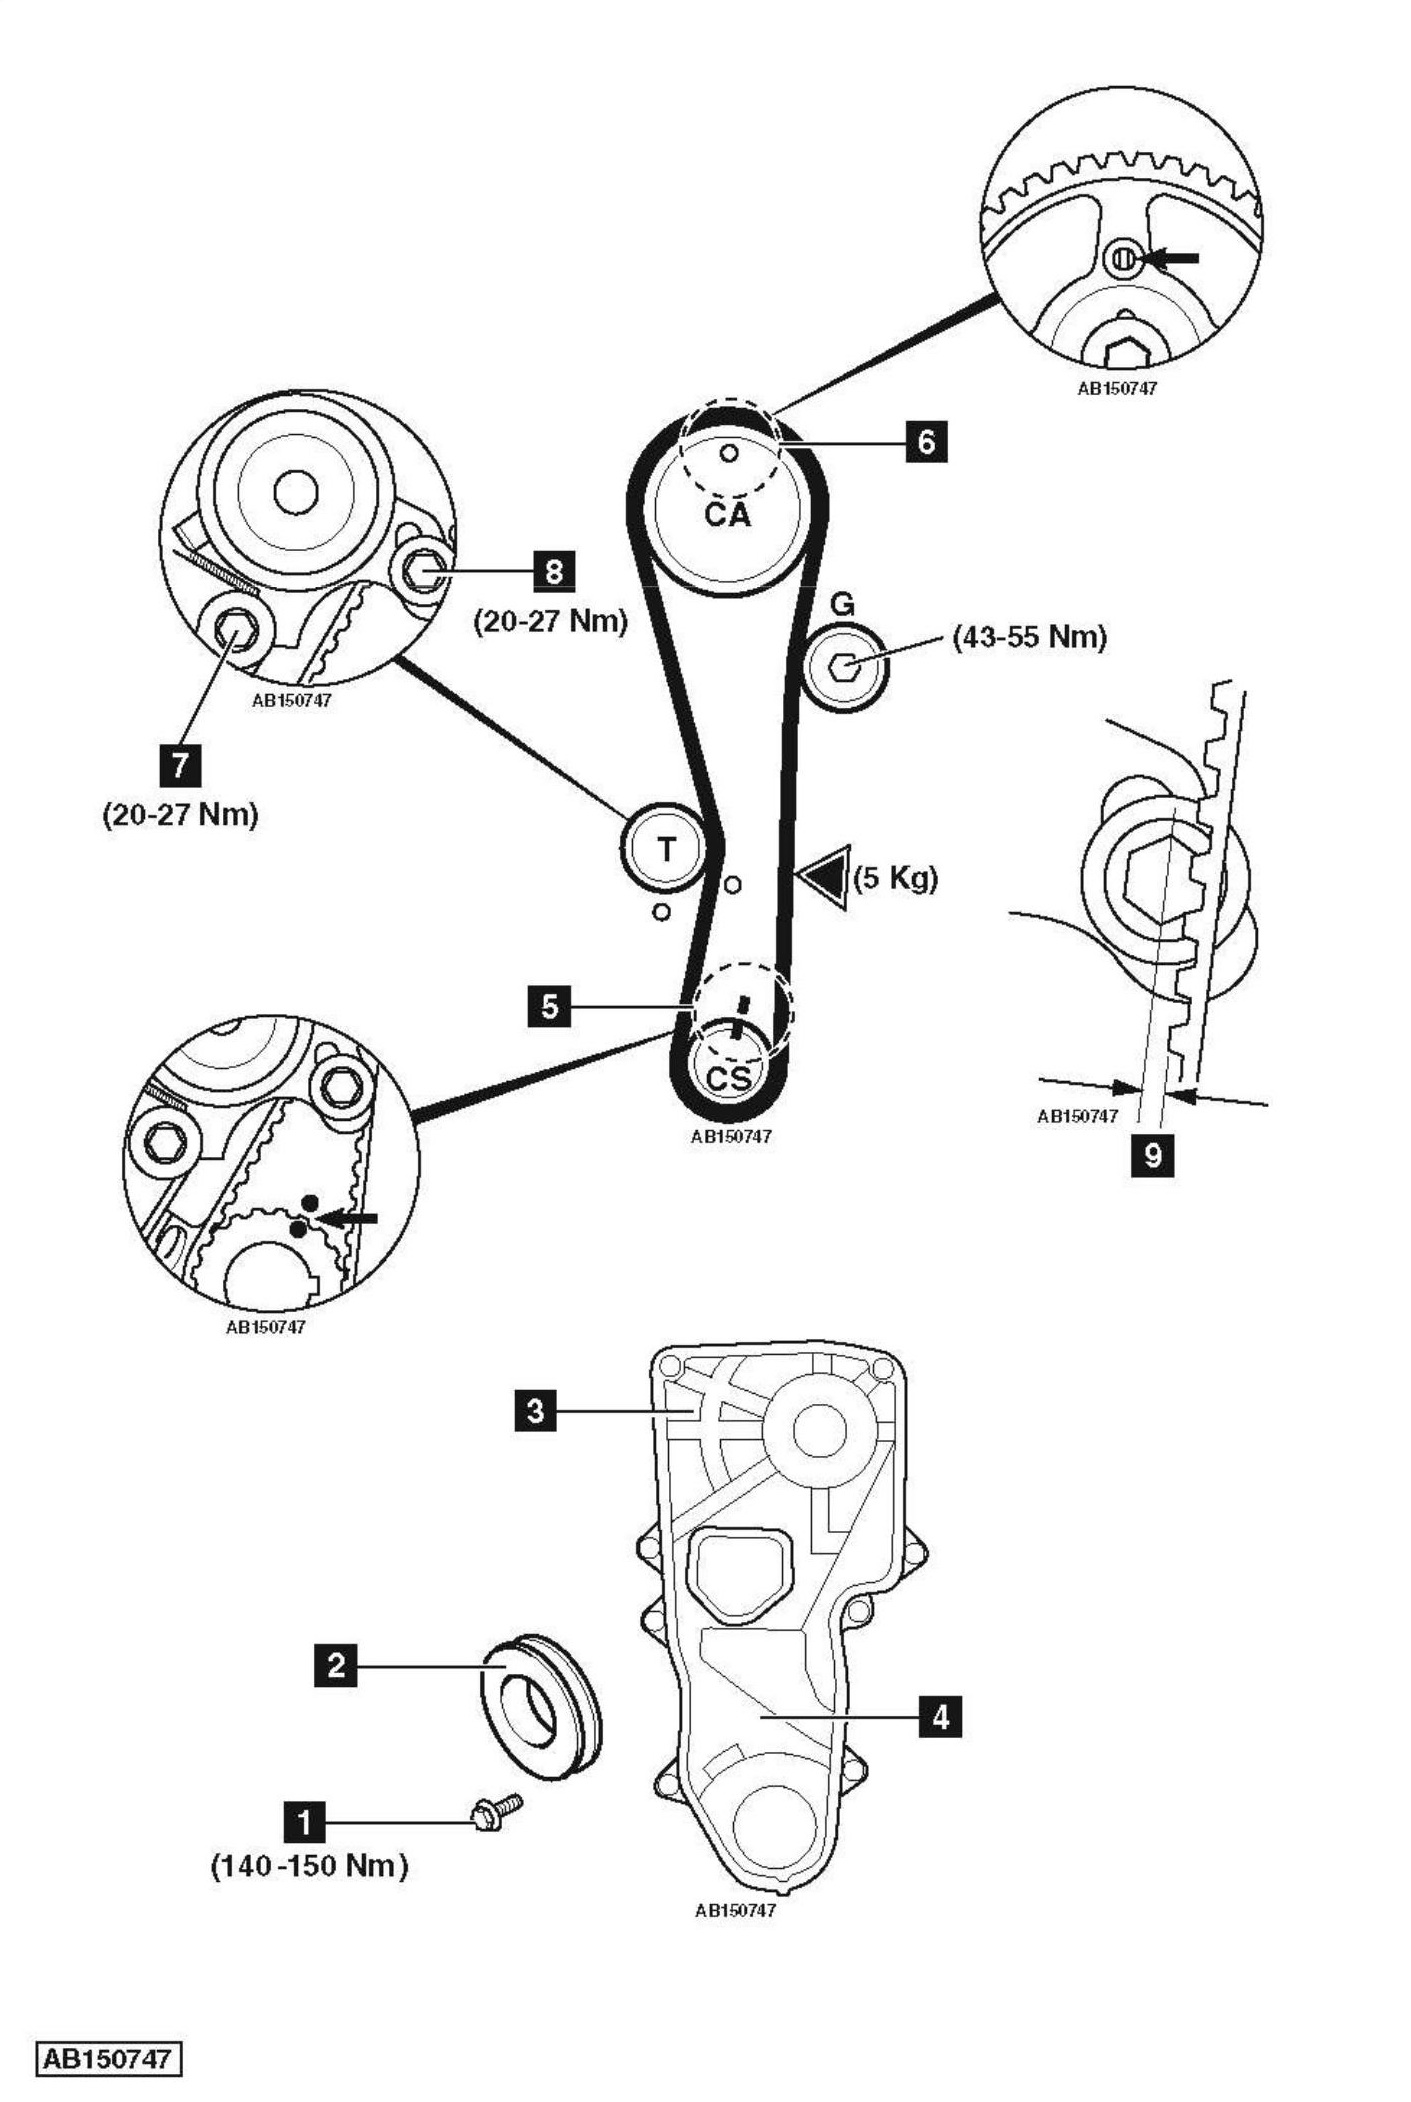 2005 Hyundai Elantra Timing Chain Replacement Diagram on Mazda 4 Cylinder Engines